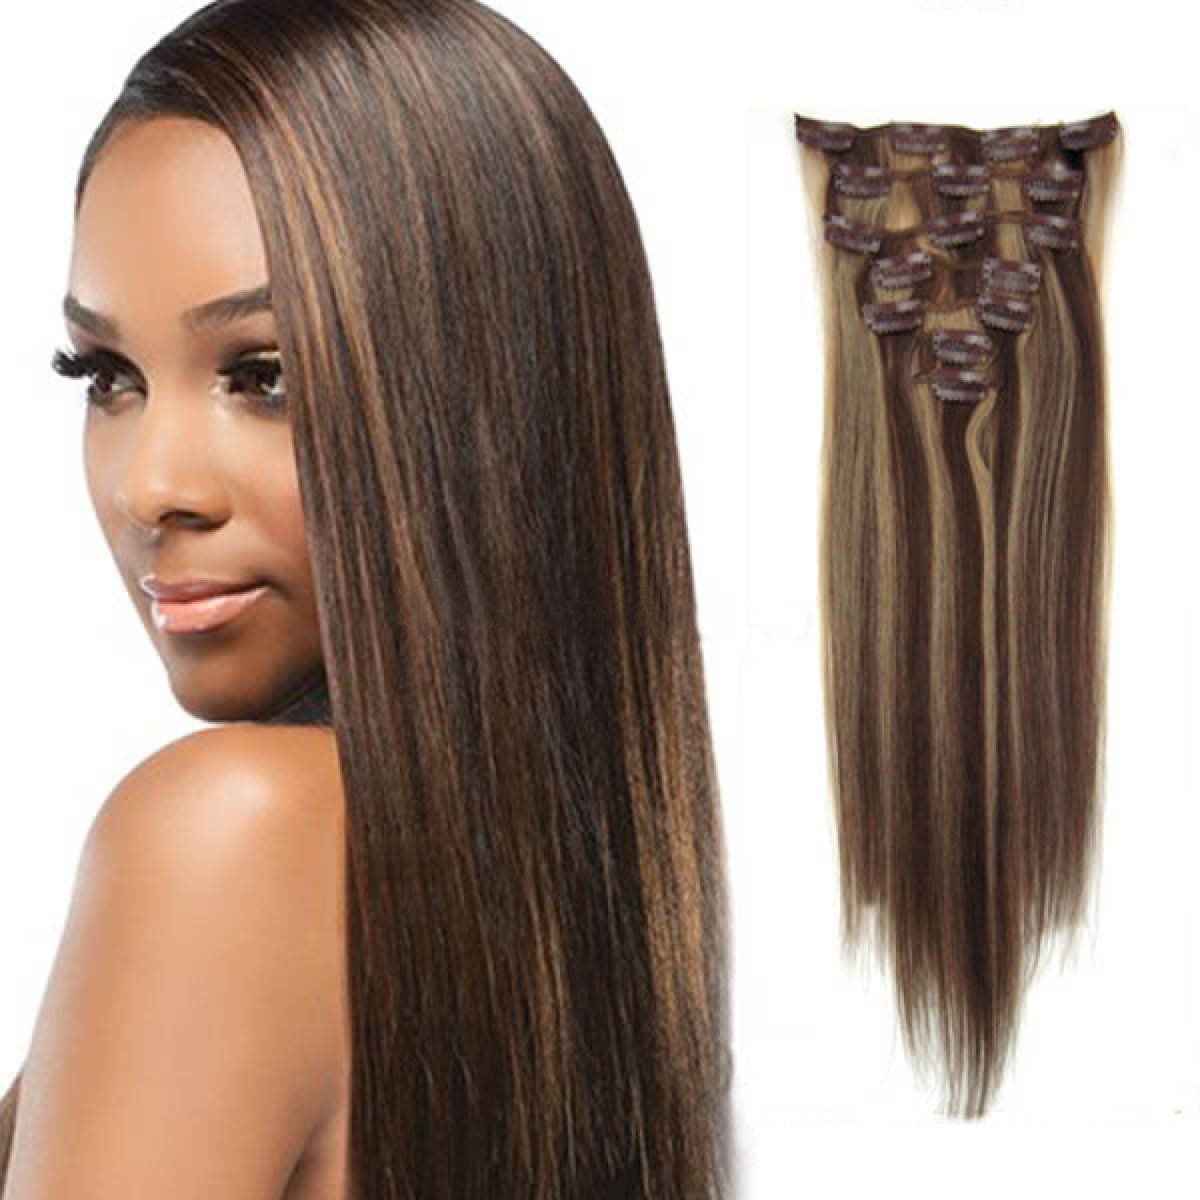 34 Inch 427 Brownblonde Clip In Human Hair Extensions 11pcs